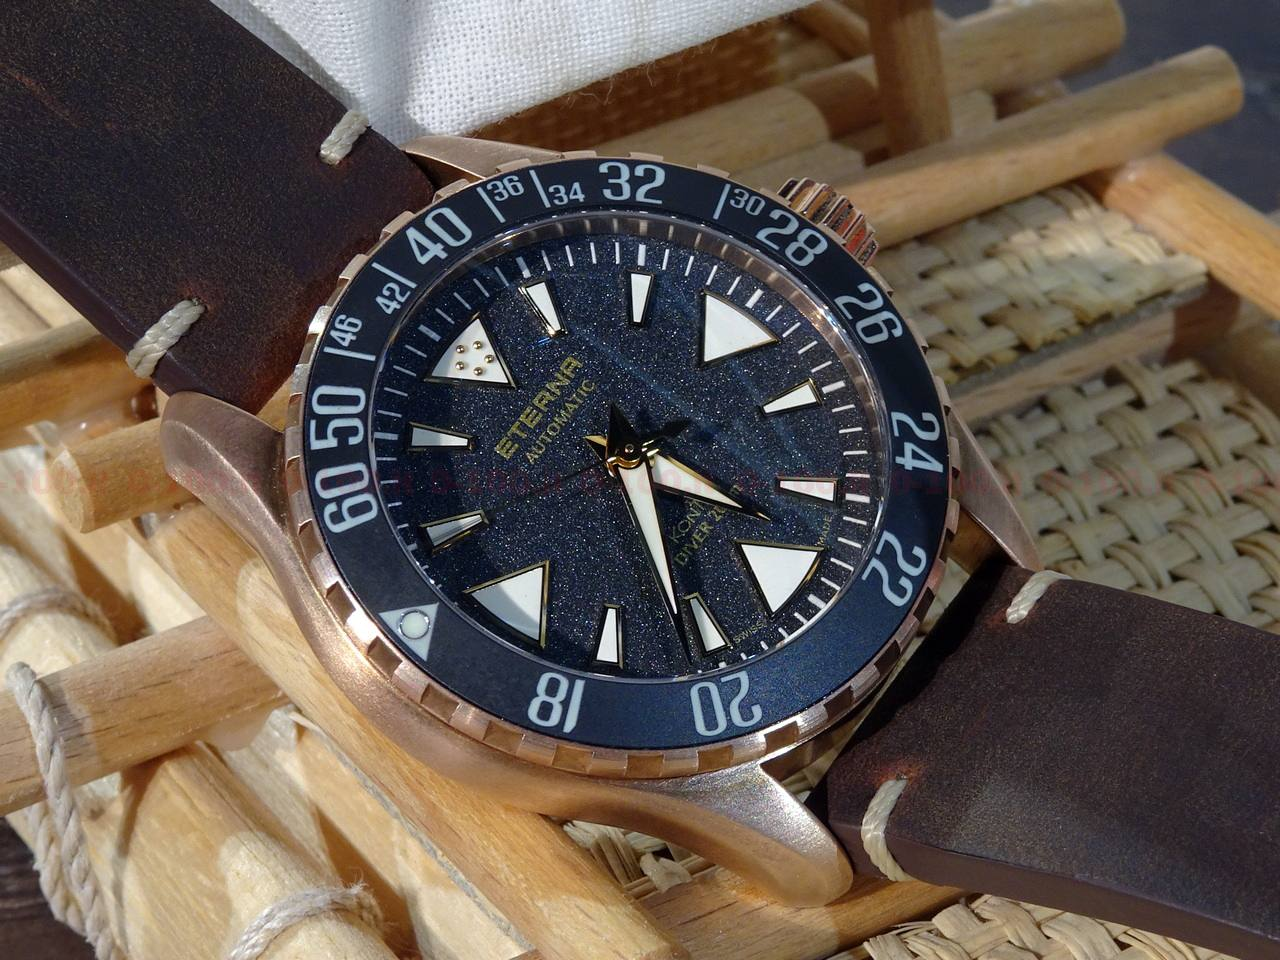 baselworld-2017-ETERNA KONTIKI BRONZE MANUFACTURE LIMITED EDITION REF. 1291.78.49.1422-prezzo-price_0-1001